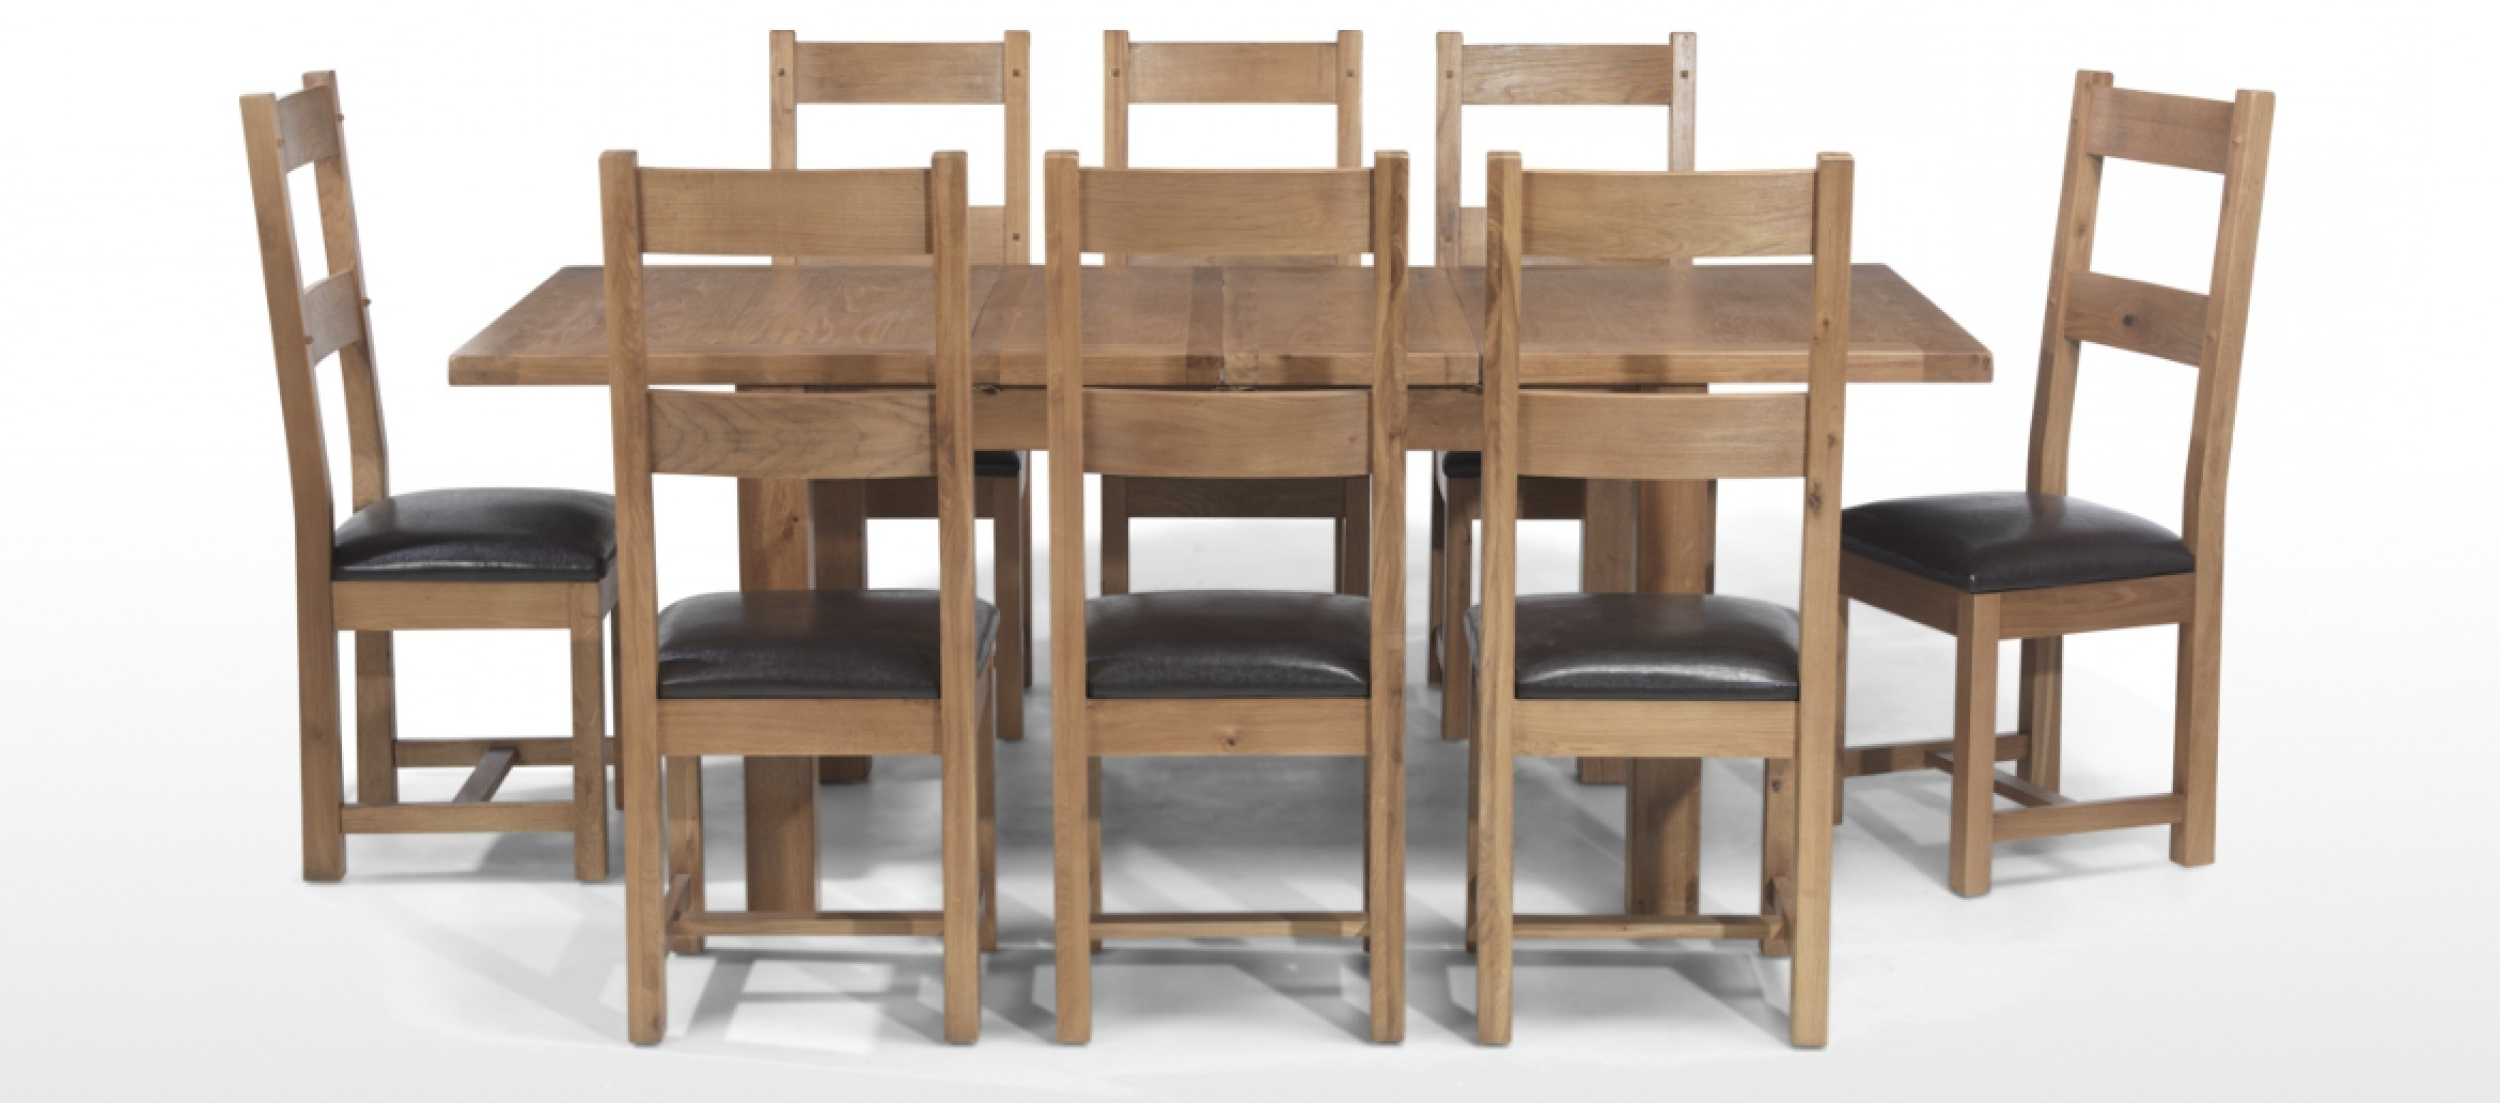 Quercus pertaining to Dining Tables 8 Chairs